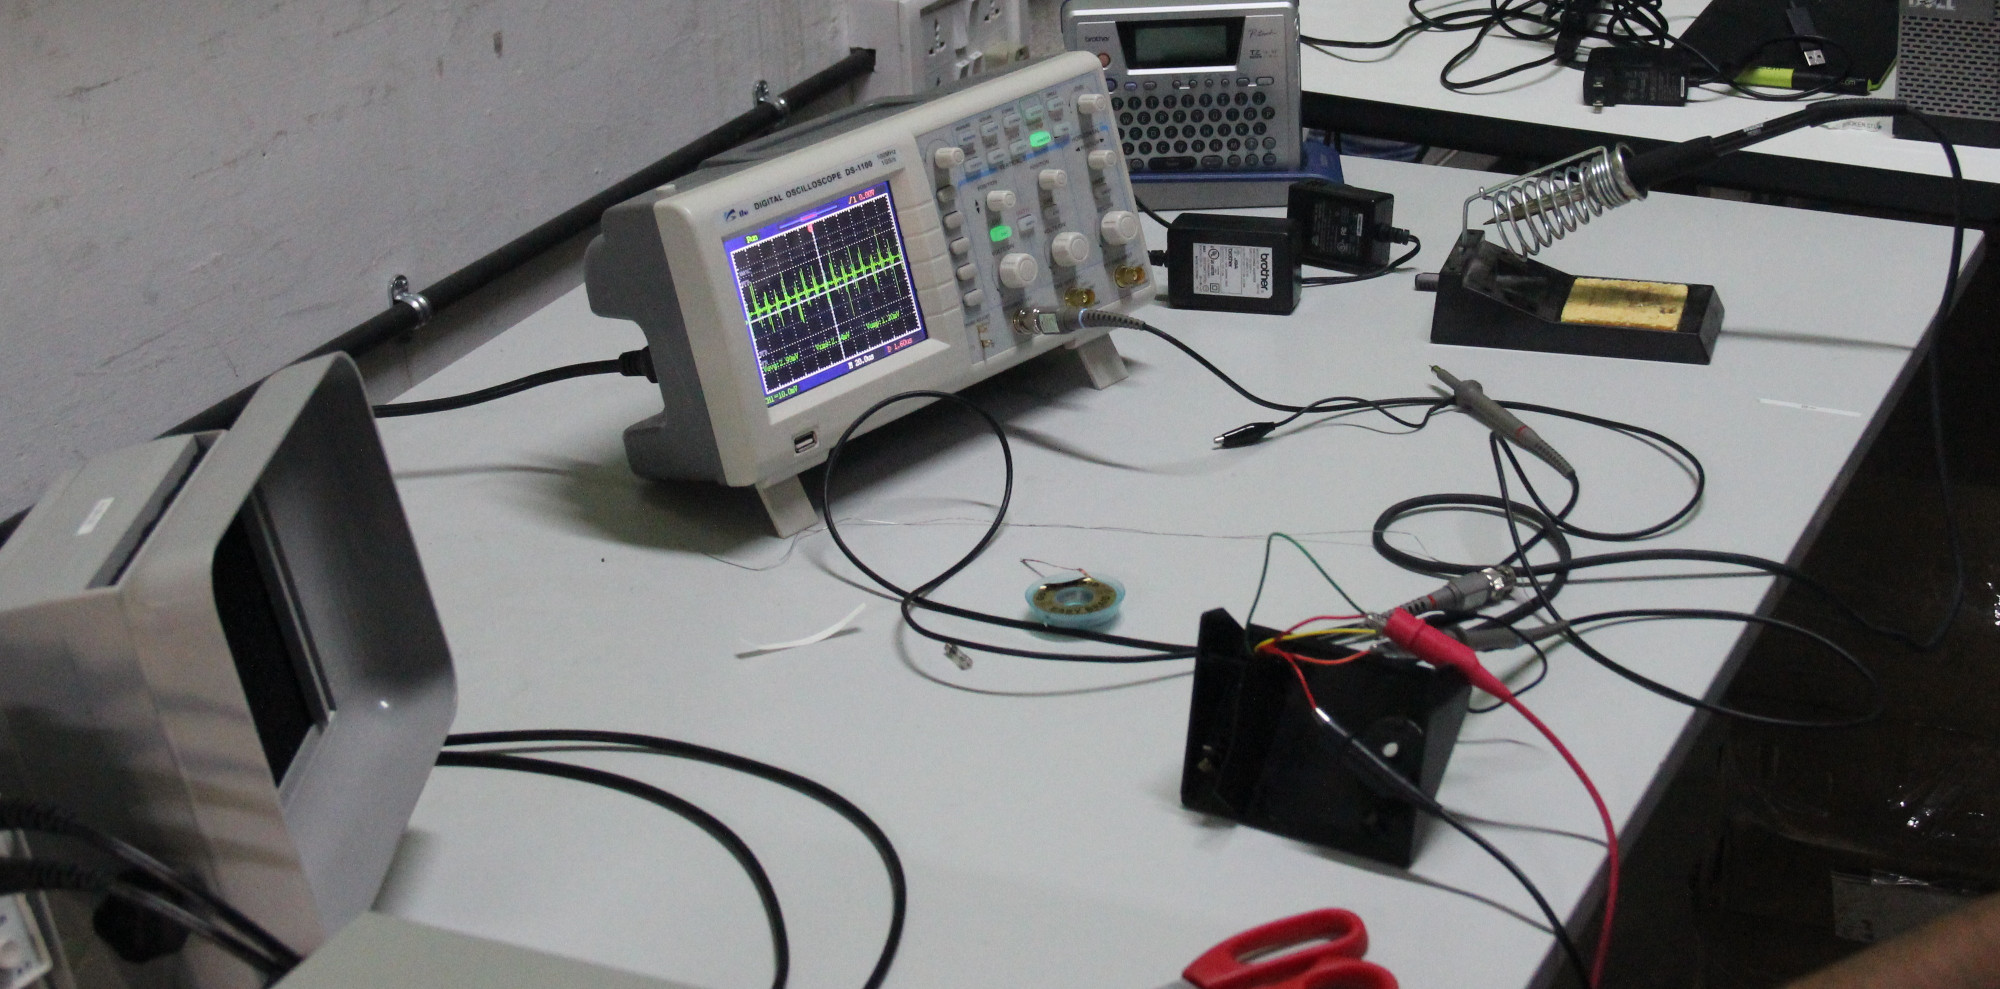 Diy soldering station the makeshift soldering station wiring solutioingenieria Image collections